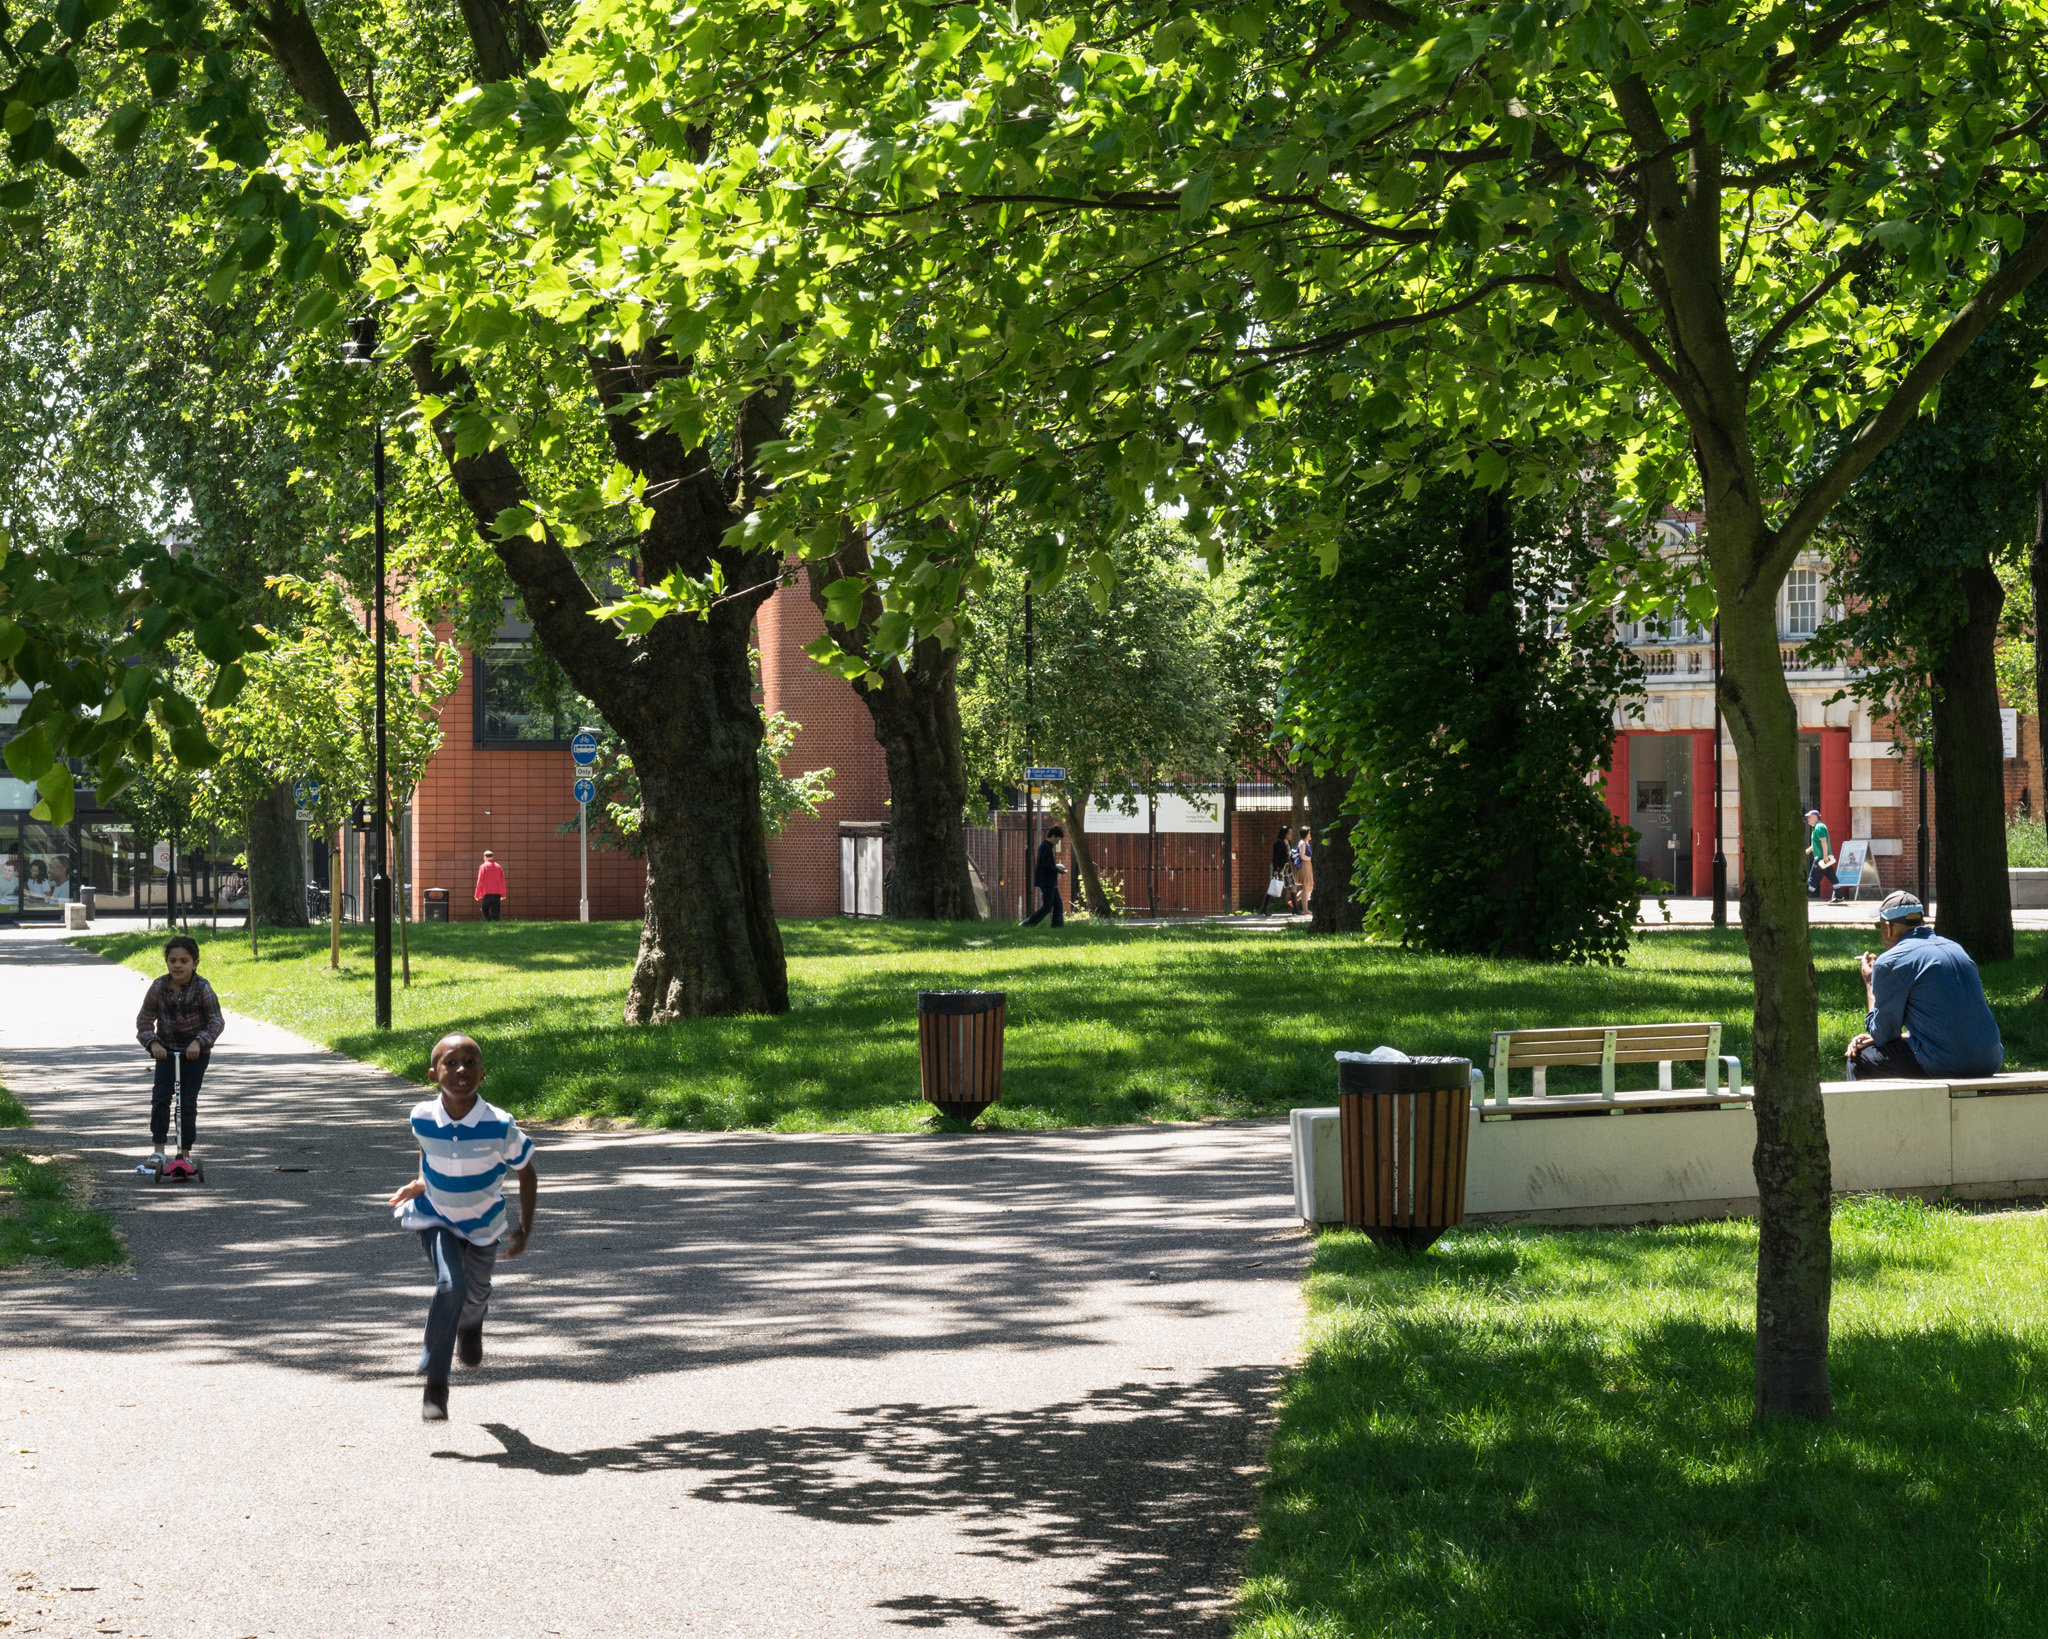 Tottenham Green. Adams and Sutherland Architects